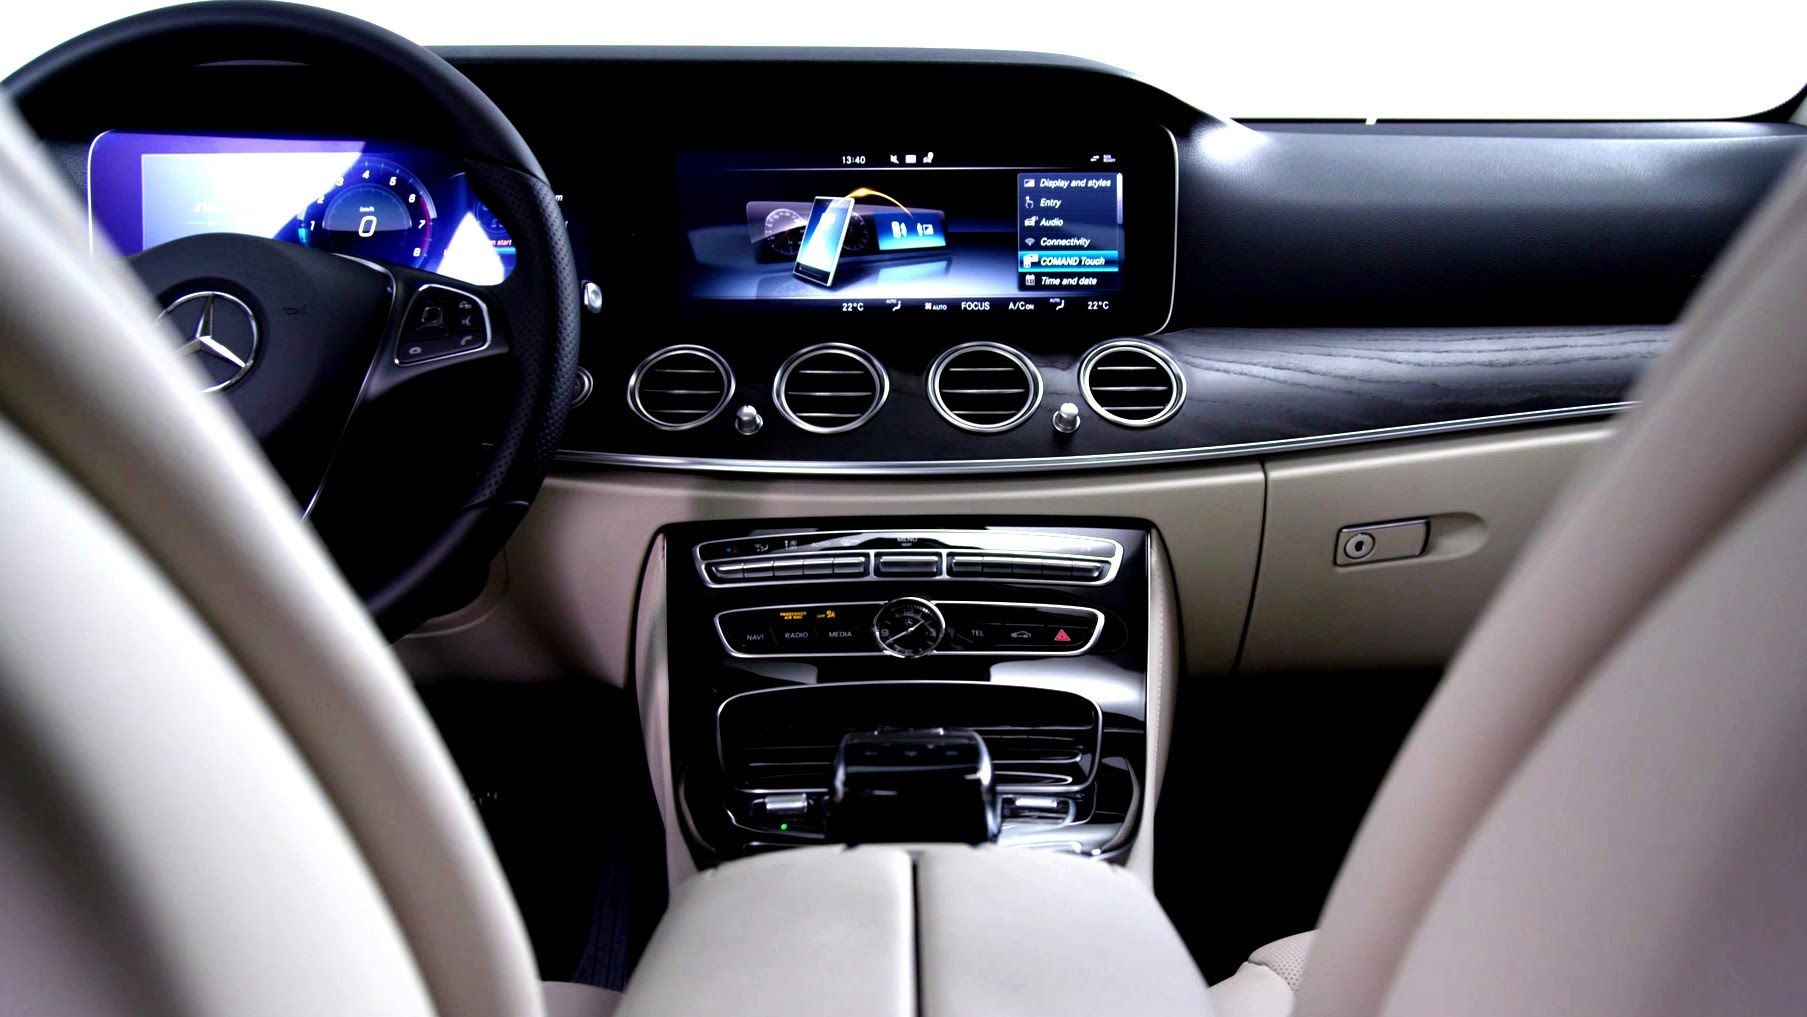 Mercedes Benz Tv Interior Design Of The Future E Class